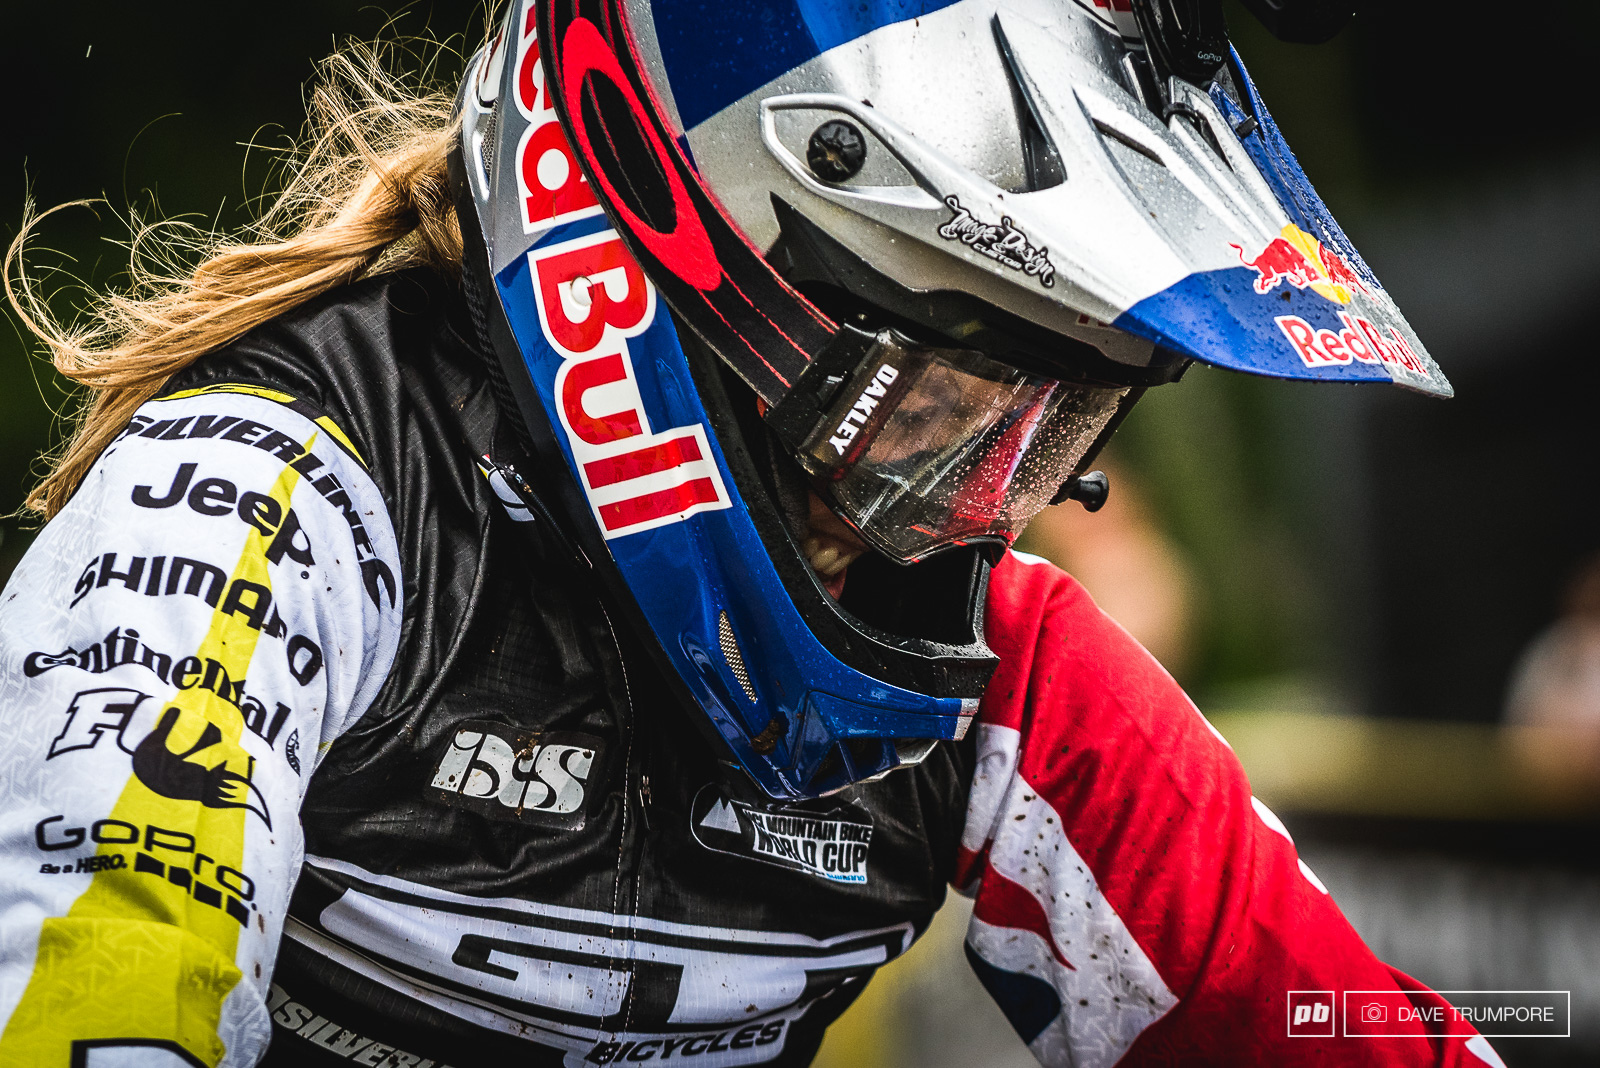 A mix of pain and pleasure on Rachel Atherton s face as she crossed the finish of Mont Sainte Anne s brutal track in 1st place.